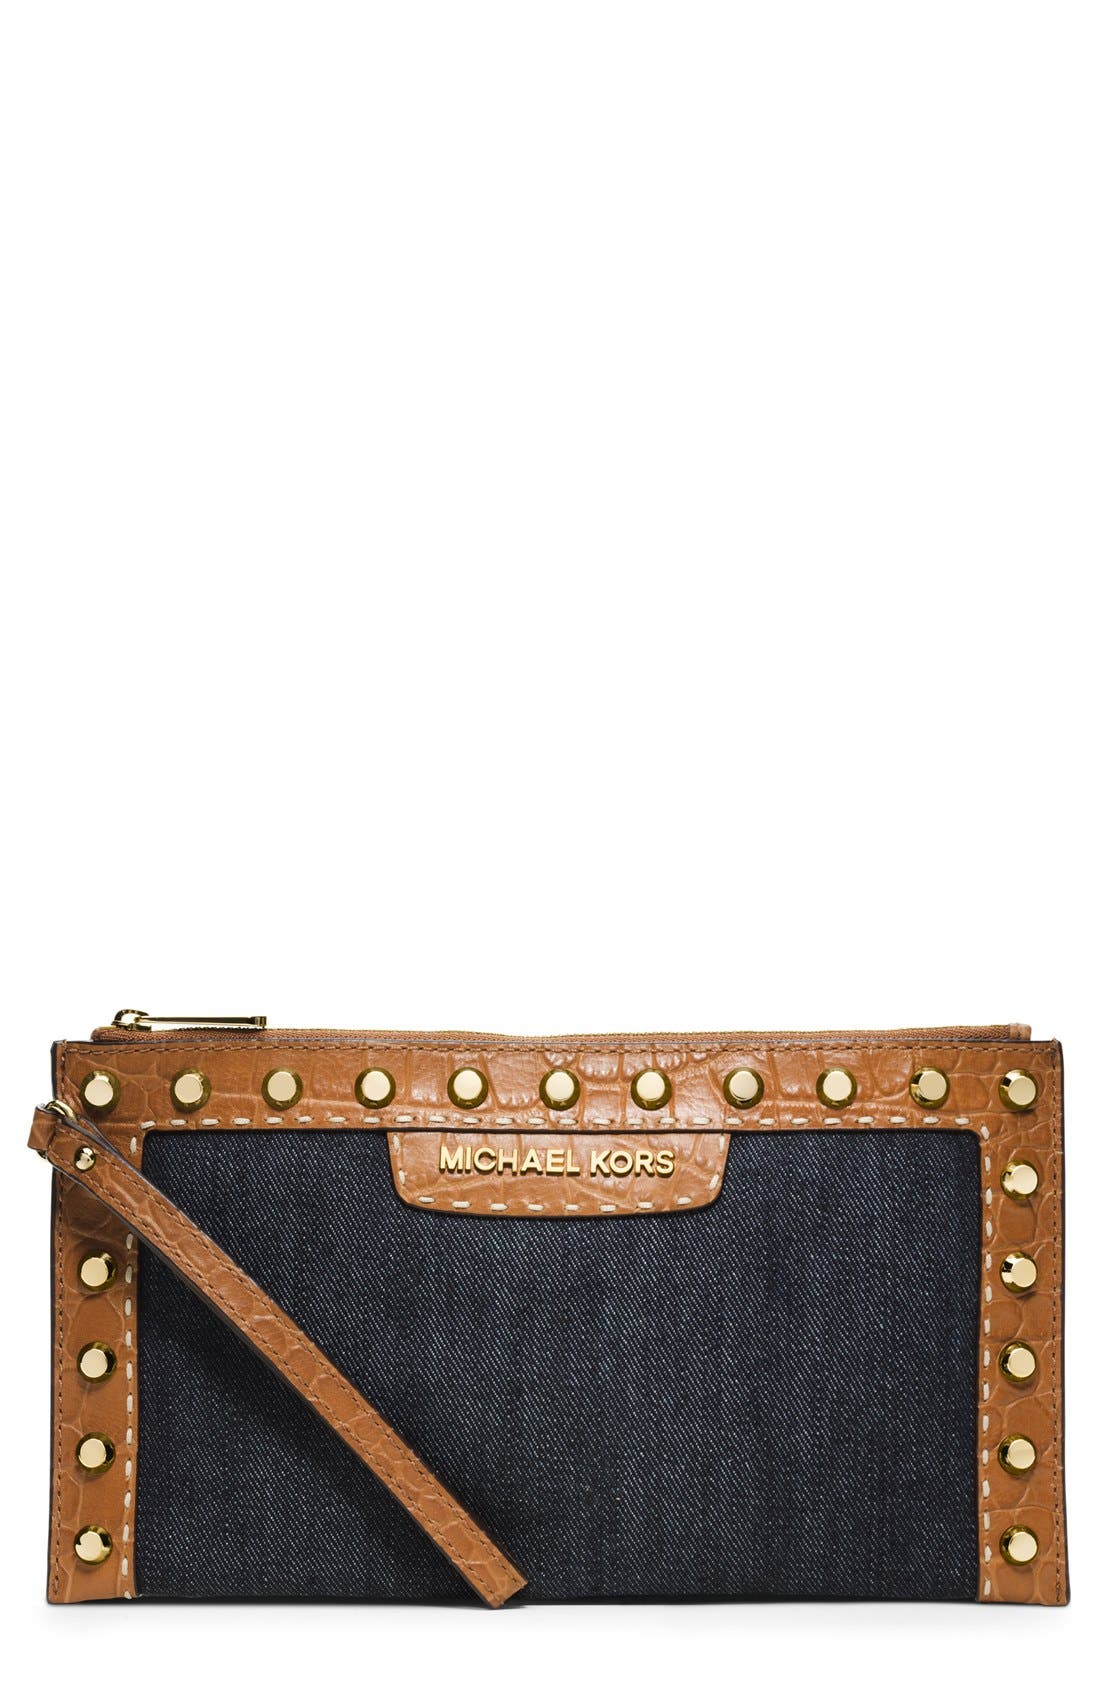 Alternate Image 1 Selected - MICHAEL Michael Kors 'Large Selma' Studded Clutch